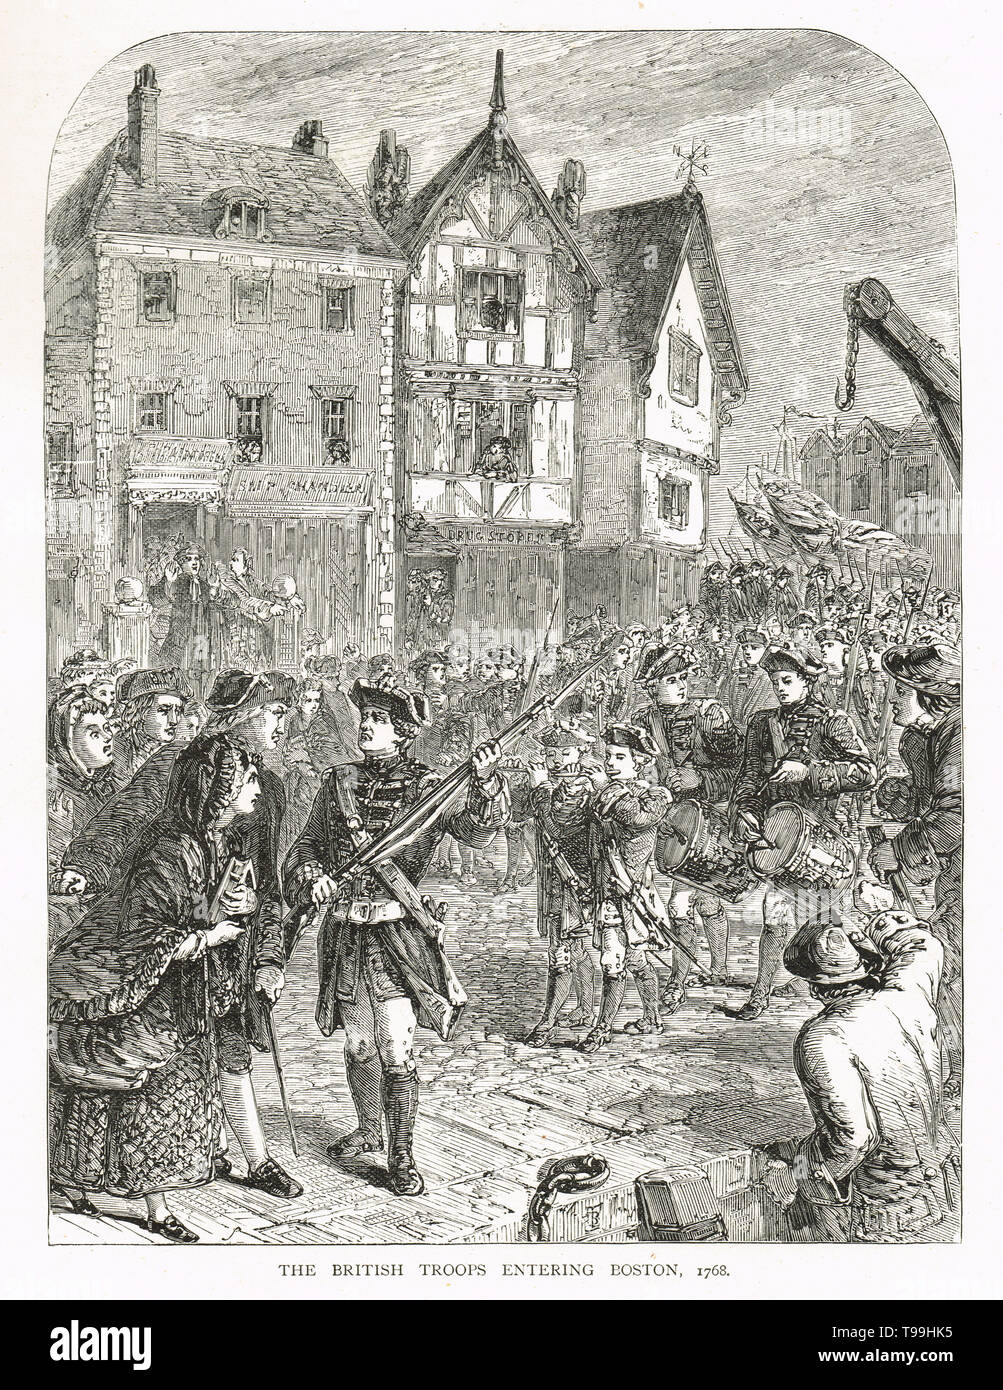 British soldiers entering Boston in 1768 - Stock Image